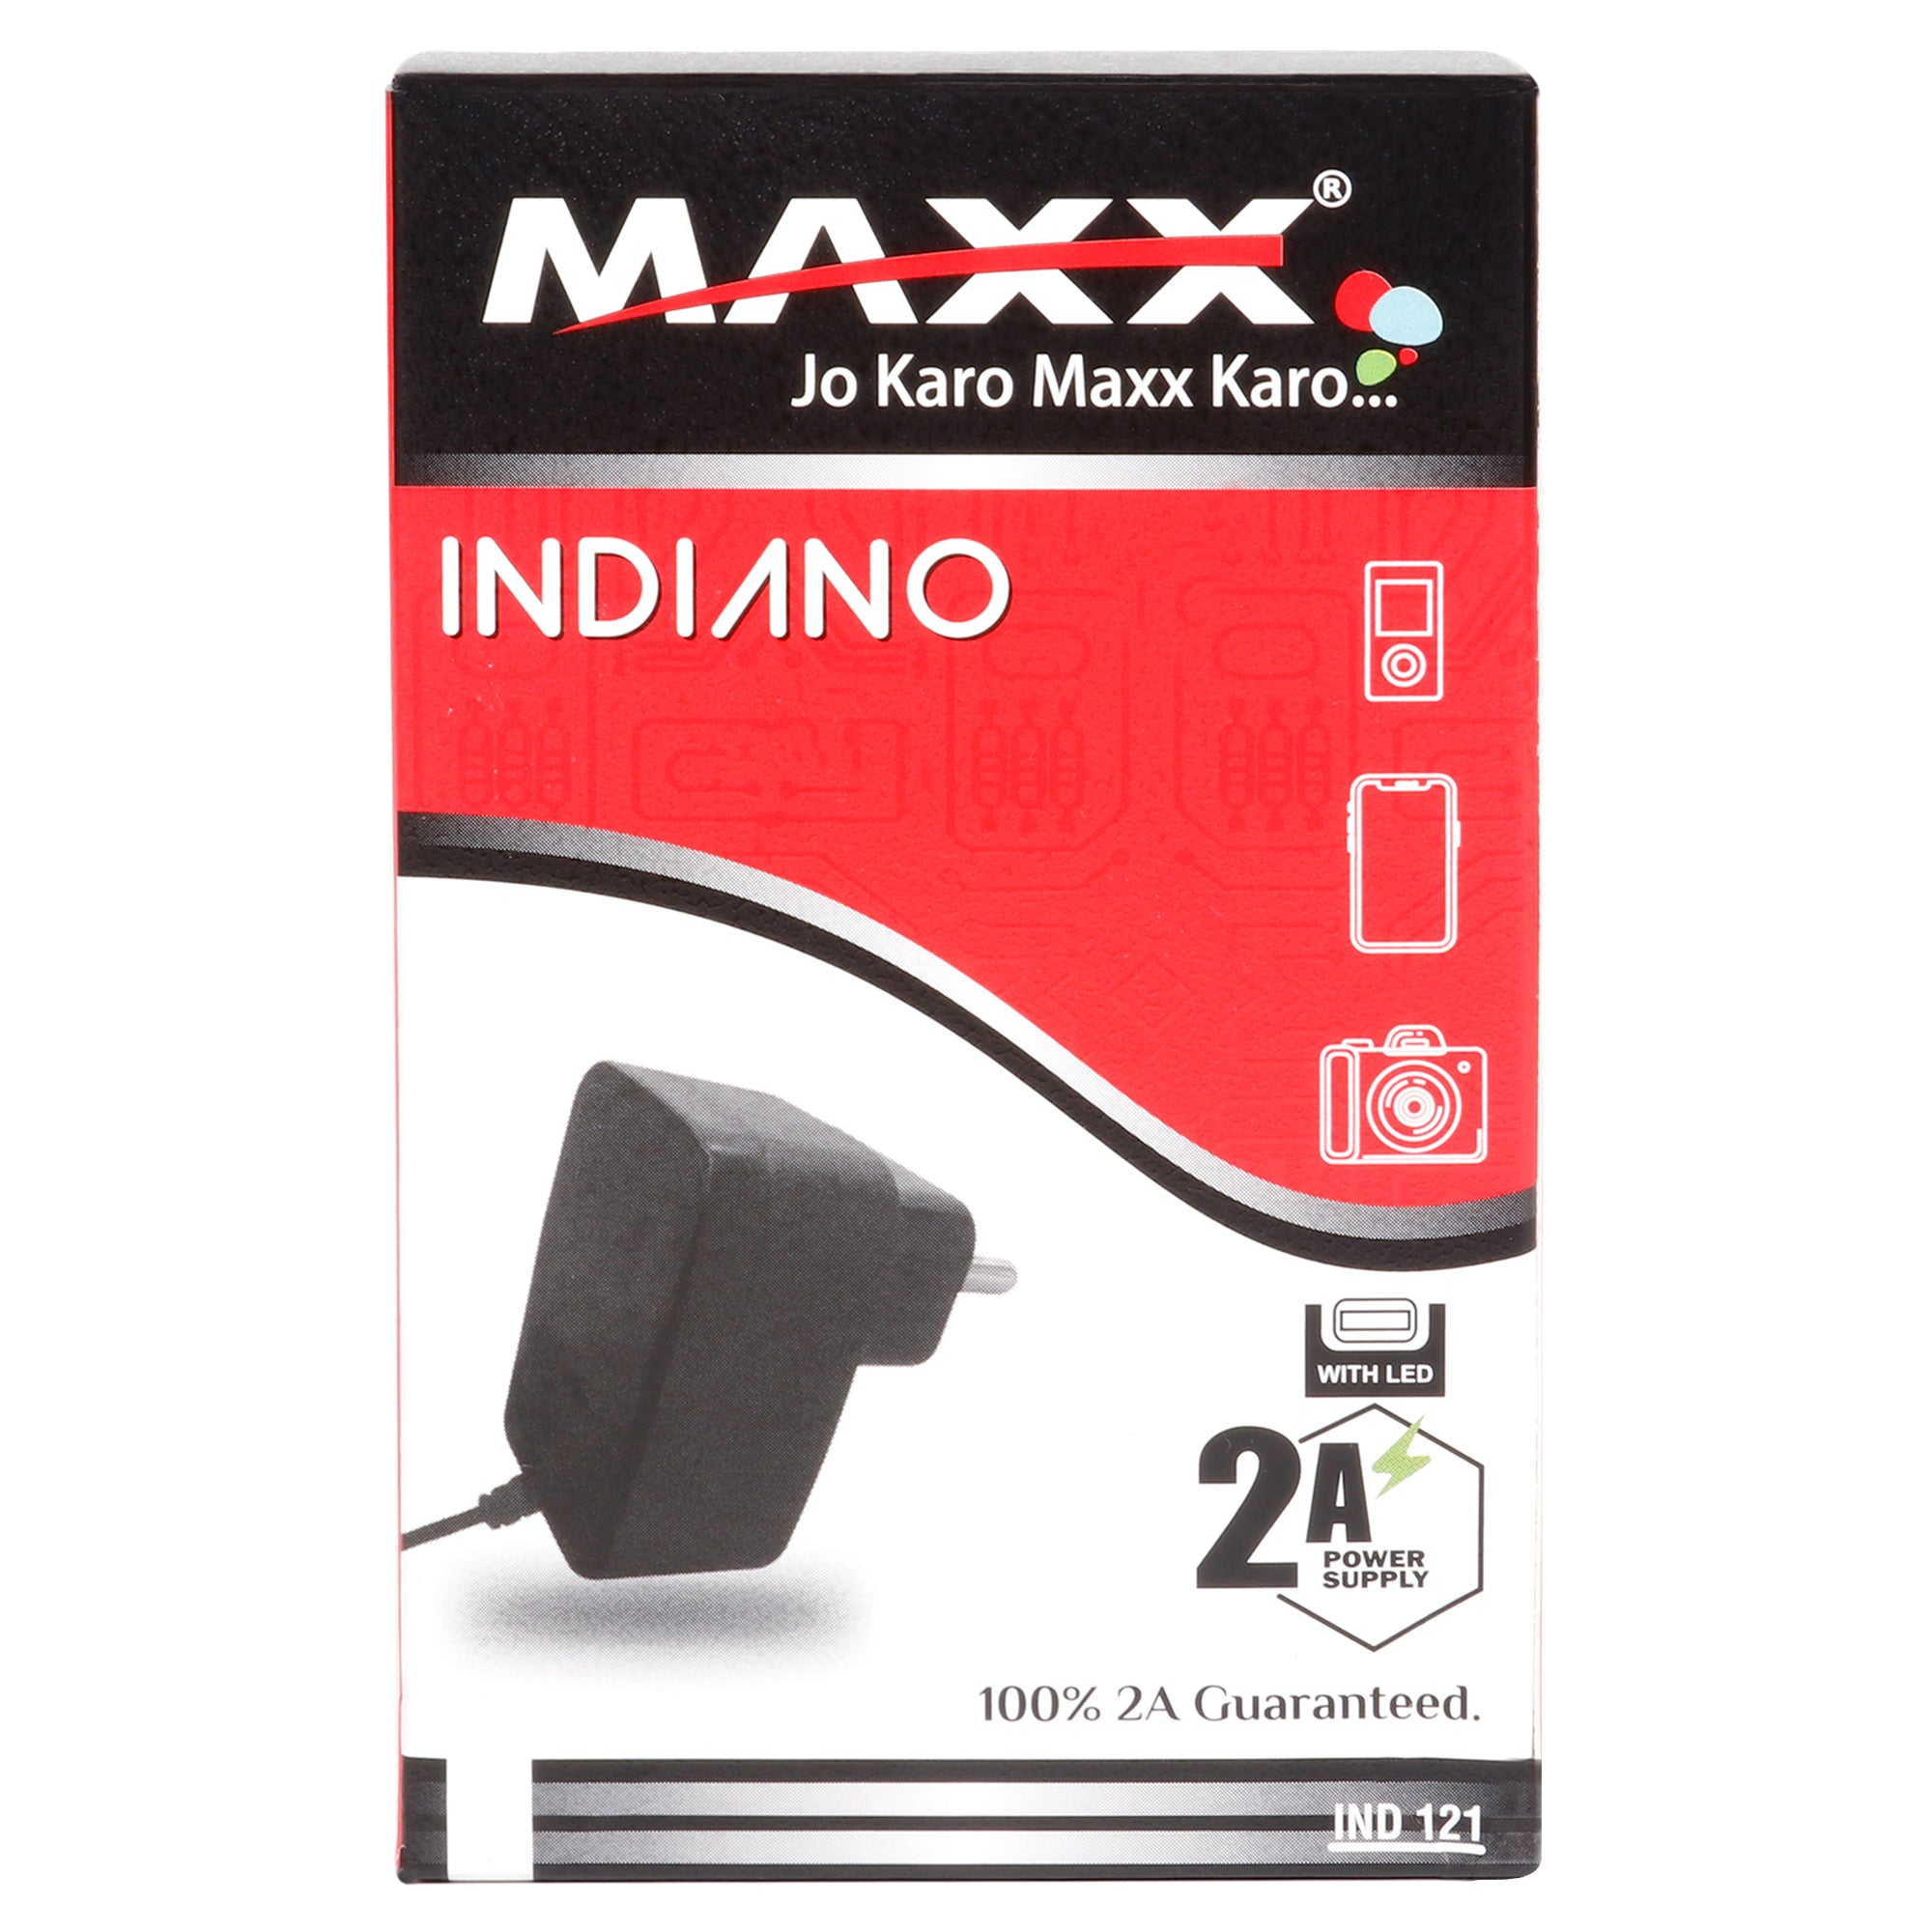 Maxx INDIANO-5V-2A-MICRO USB 1.2 MTR Wired Fast Mobile Charger (Adaptor) for Smart Phones ,Compatible with VIVO,OPPO,MI,SAMSUNG